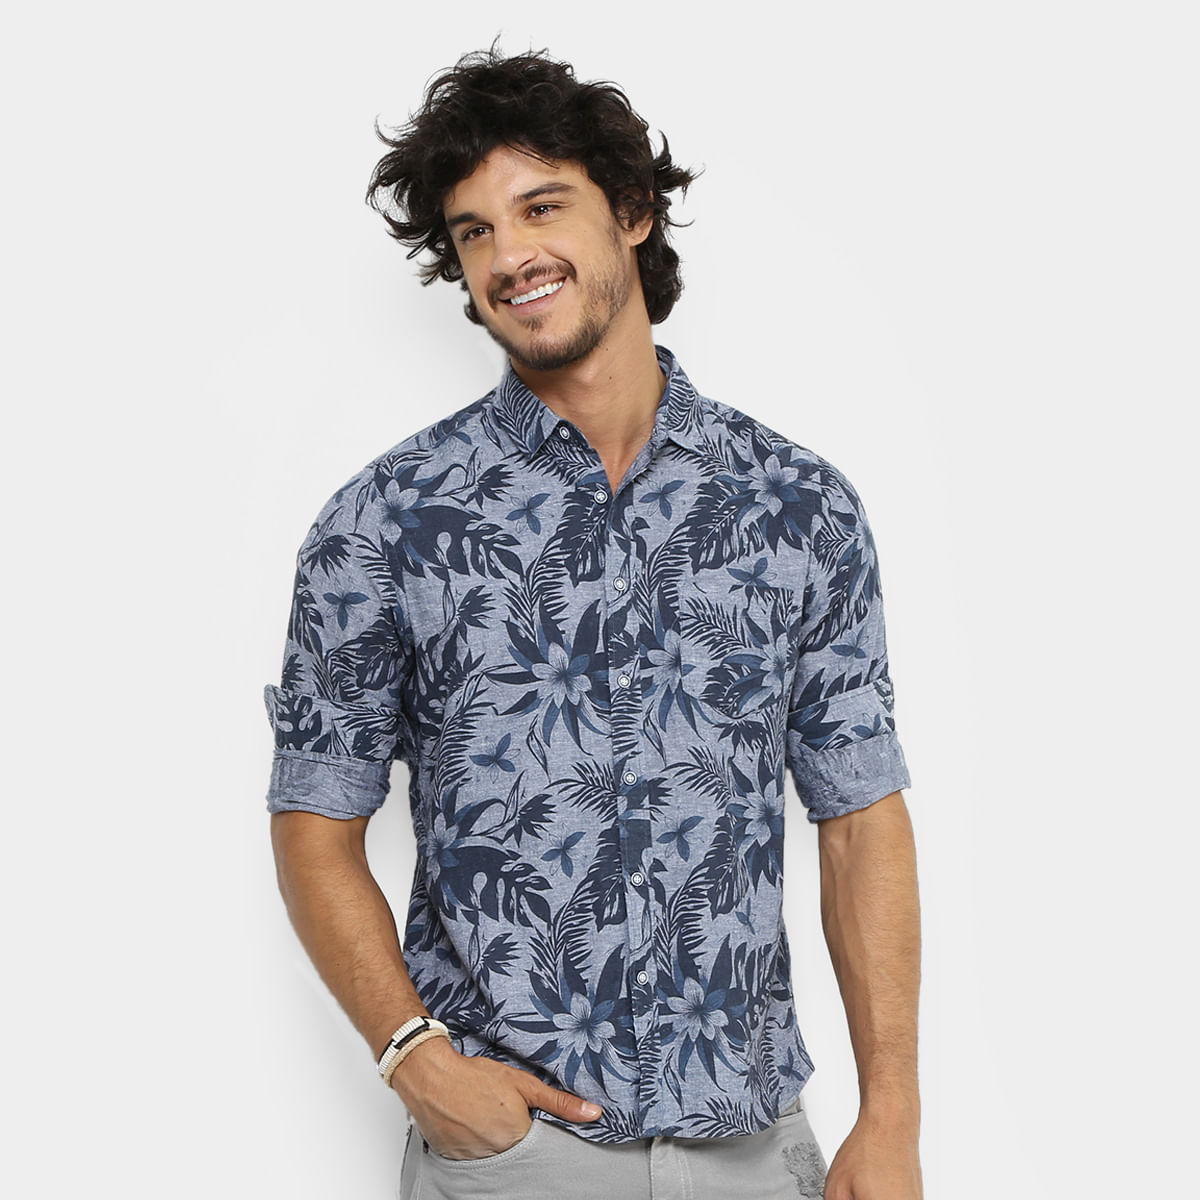 209c8d6ee4 Camisa Pacific Blue Floral Hawaii Masculina - Azul P. Clique e veja!  image-930e9c2a79ef77f89bcc324317b18fbc